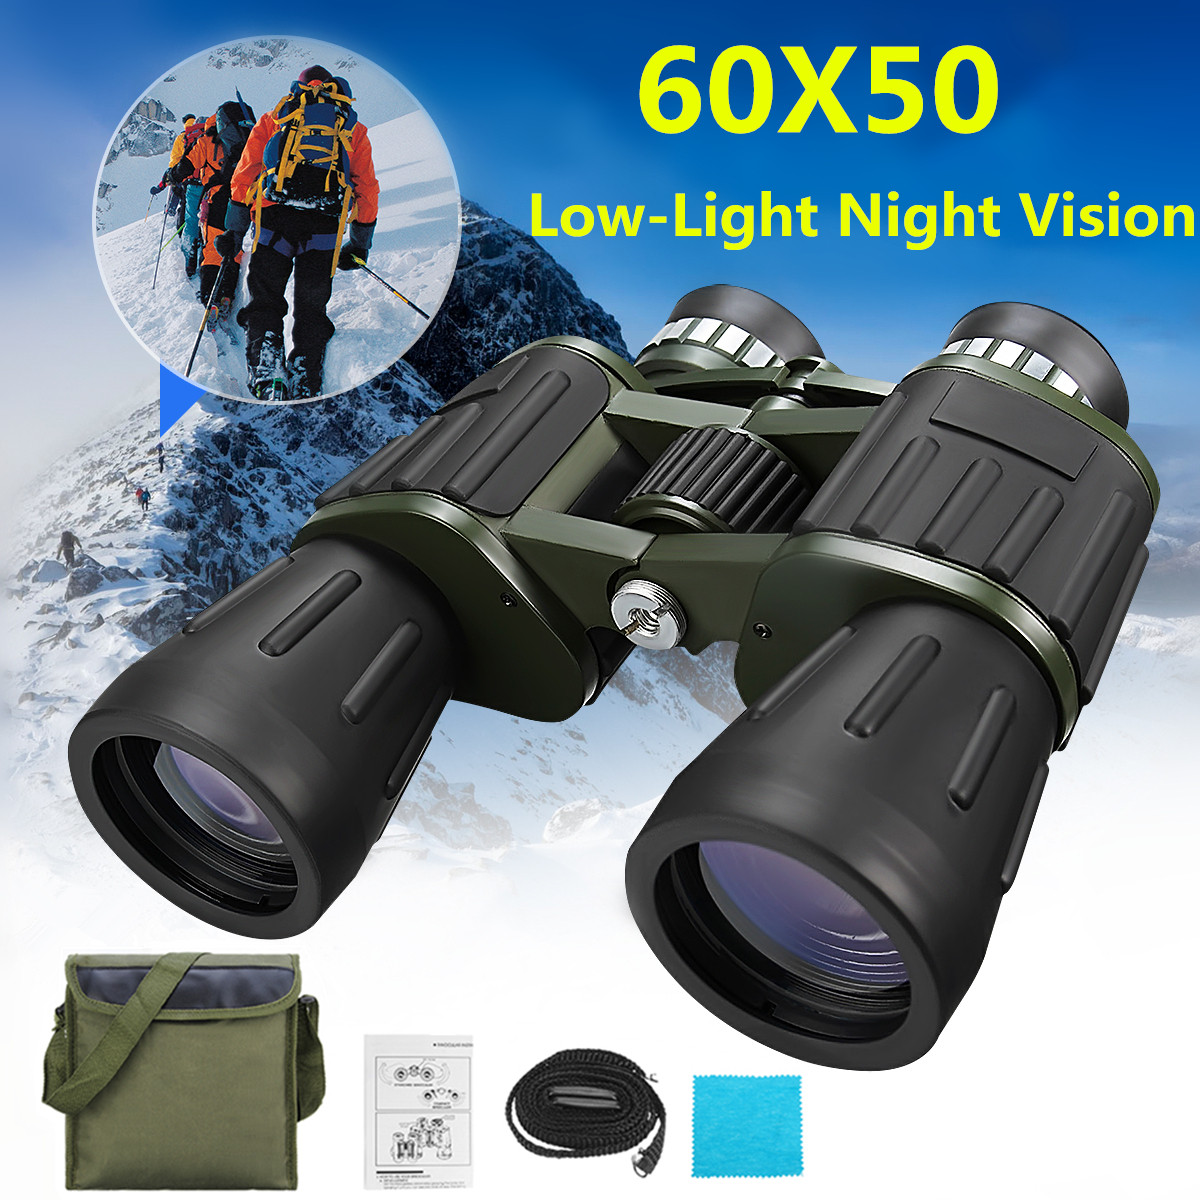 60x50 Magnification Military Army Zoom HD Binoculars Outdoor Hunting Camping Telescope with Low-Light Night Vision